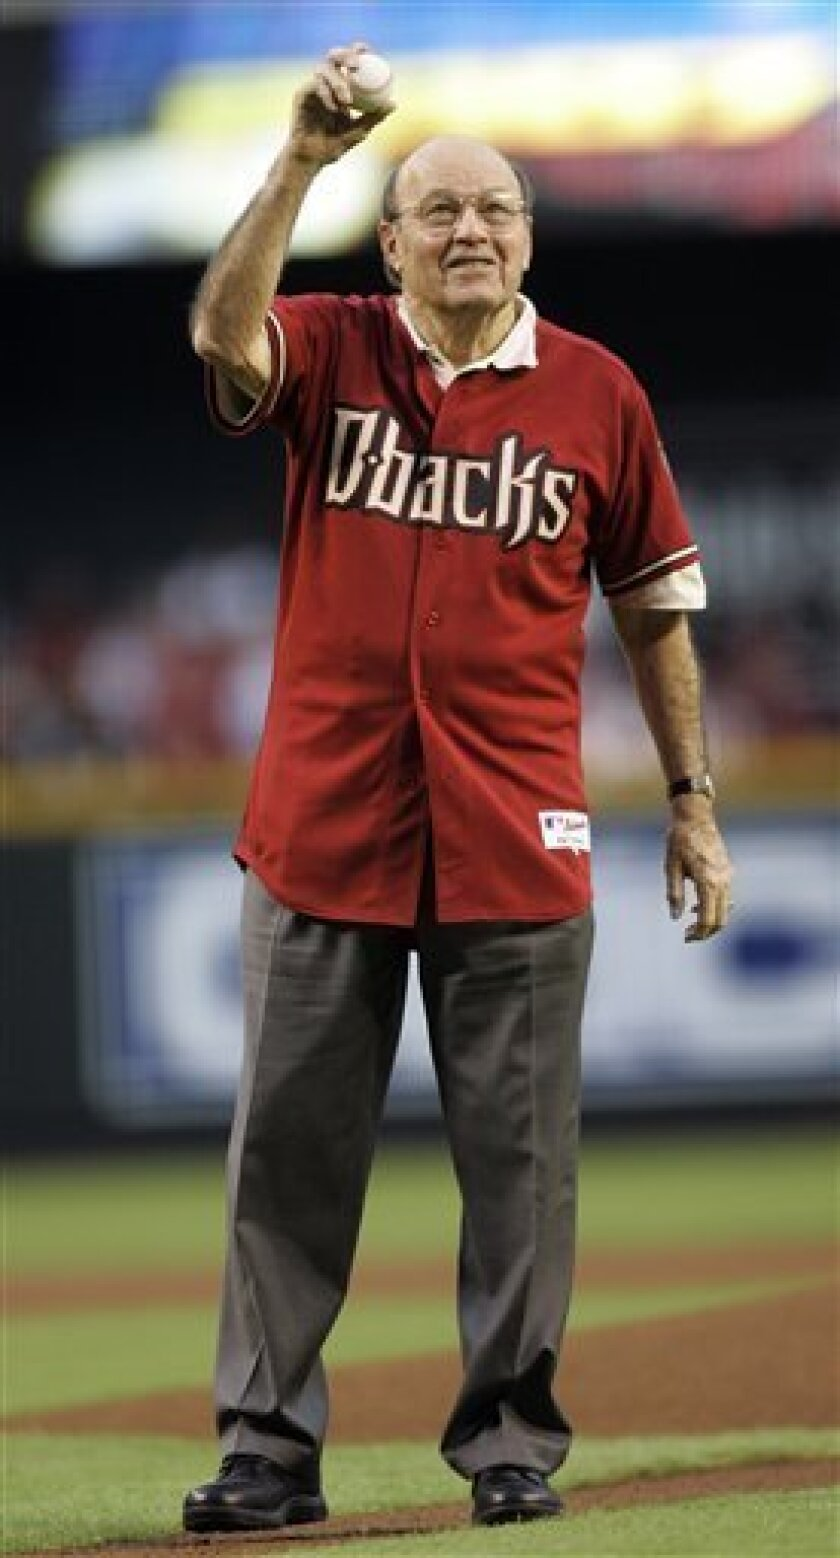 FILE - In this Oct. 11, 2007, file photo, Hall of Fame broadcaster Joe Garagiola throws out the ceremonial first pitch before Game 1 of the National League Championship baseball series between the Arizona Diamondbacks and Colorado Rockies in Phoenix. Garagiola, whose career transcended sports with